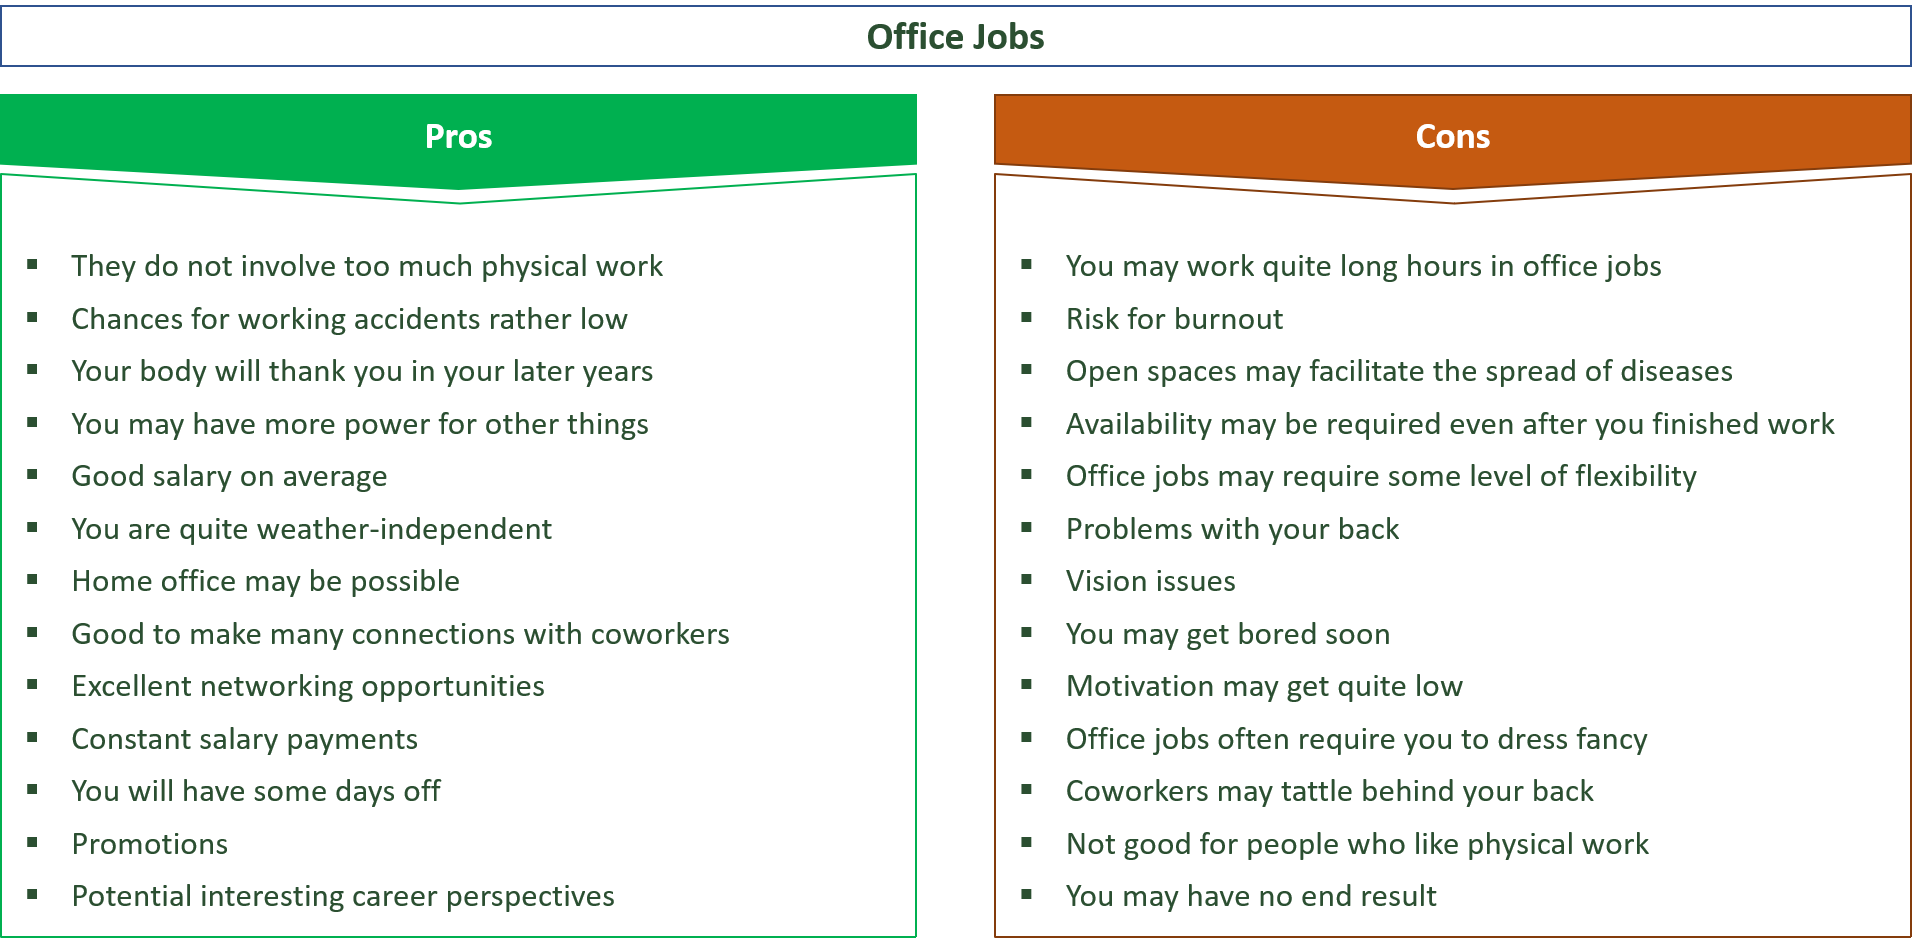 advantages and disadvantages of office jobs